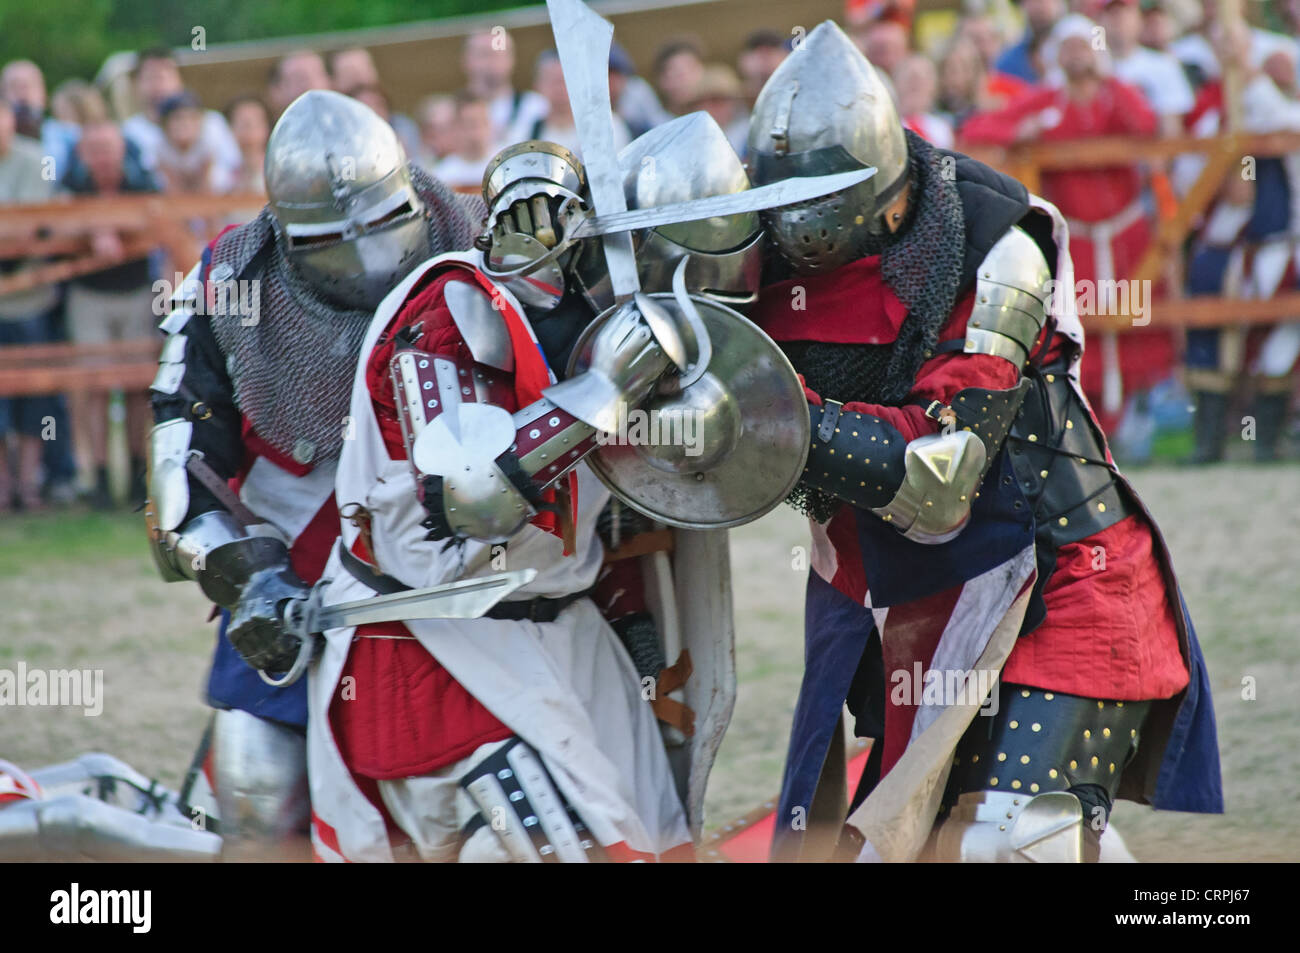 knights fighting stock photos u0026 knights fighting stock images alamy